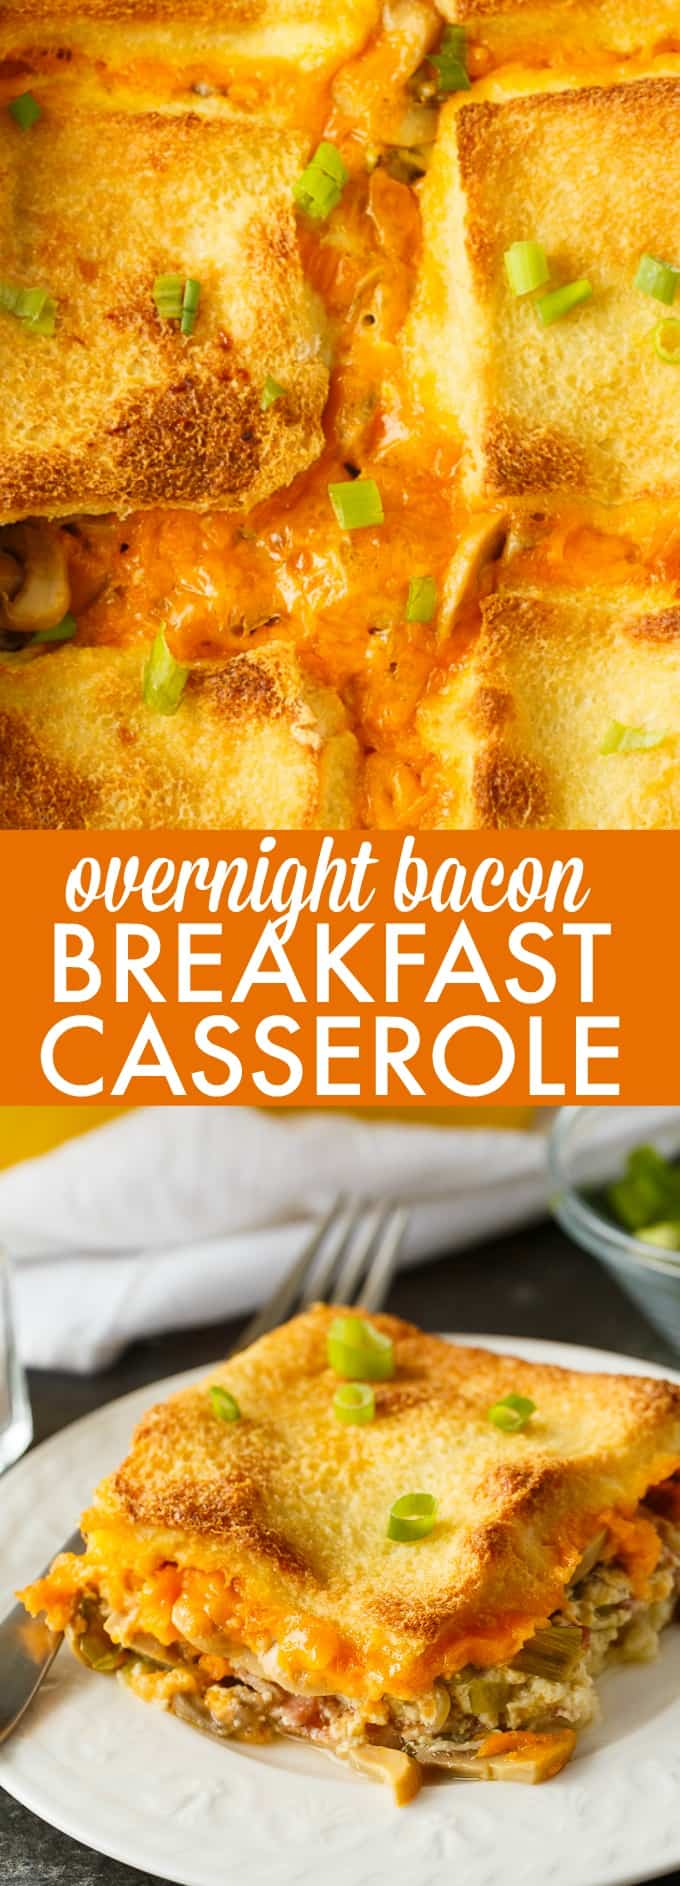 Overnight Bacon Breakfast Casserole - Prep this easy breakfast casserole the night before and bake it in the morning. Made with loads of bacon, mushrooms and cheese!